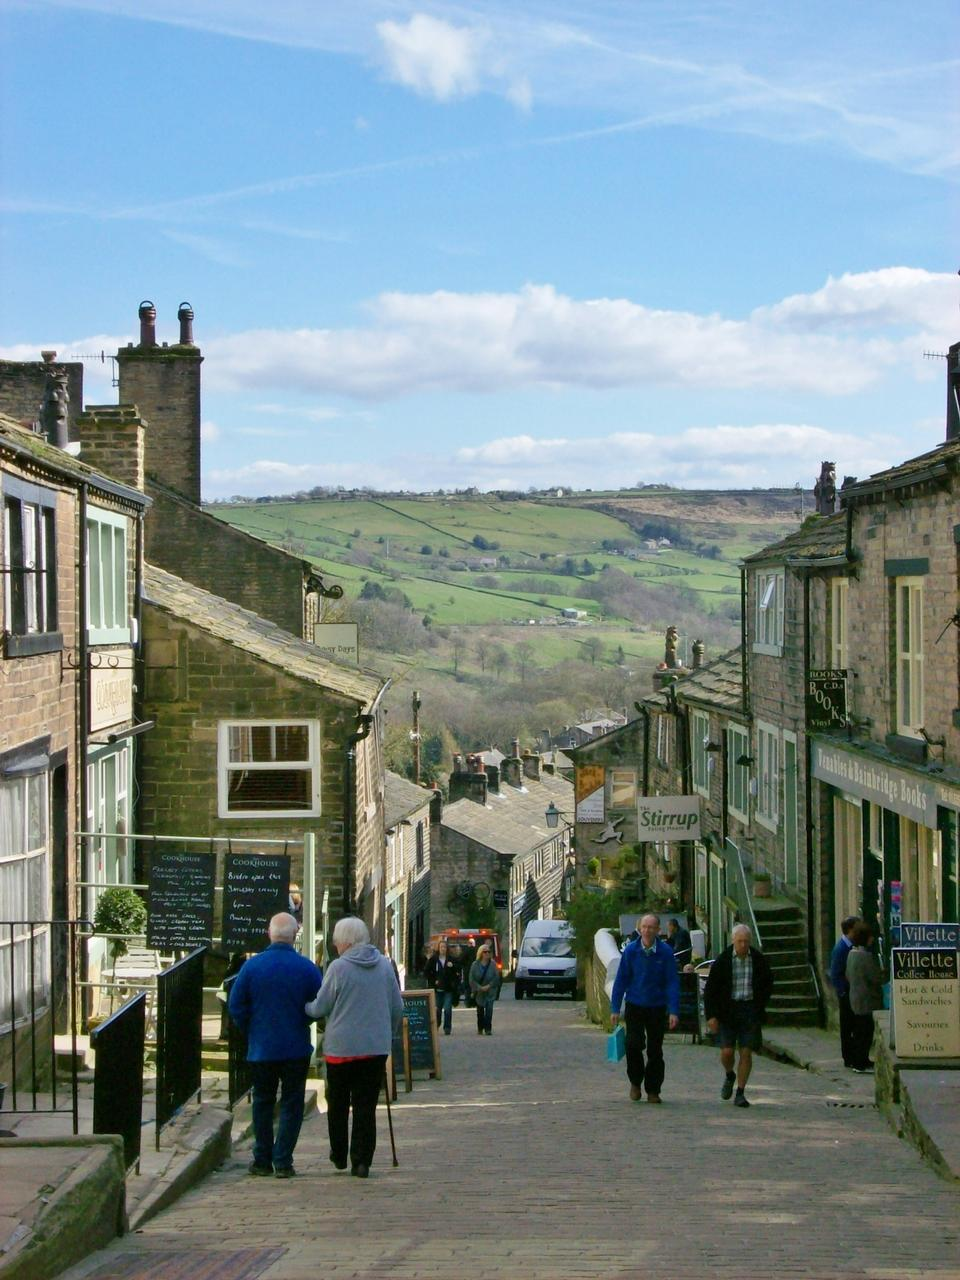 Free Main Street, Haworth Historical Place